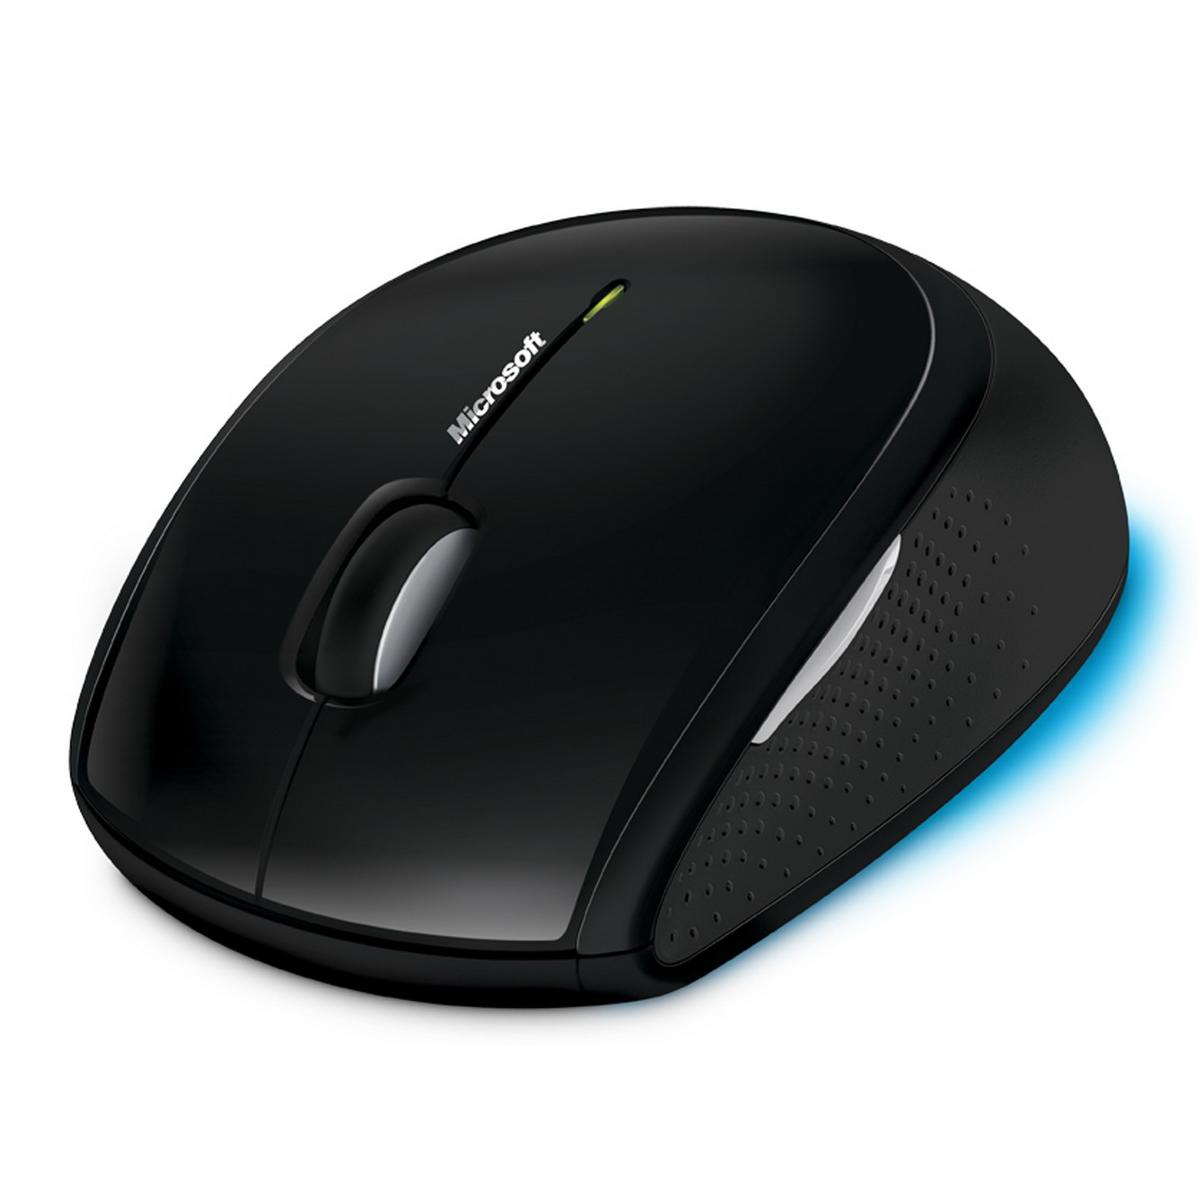 PC, Microsoft Wireless Mouse 5000 BlueTrack (USB) Black